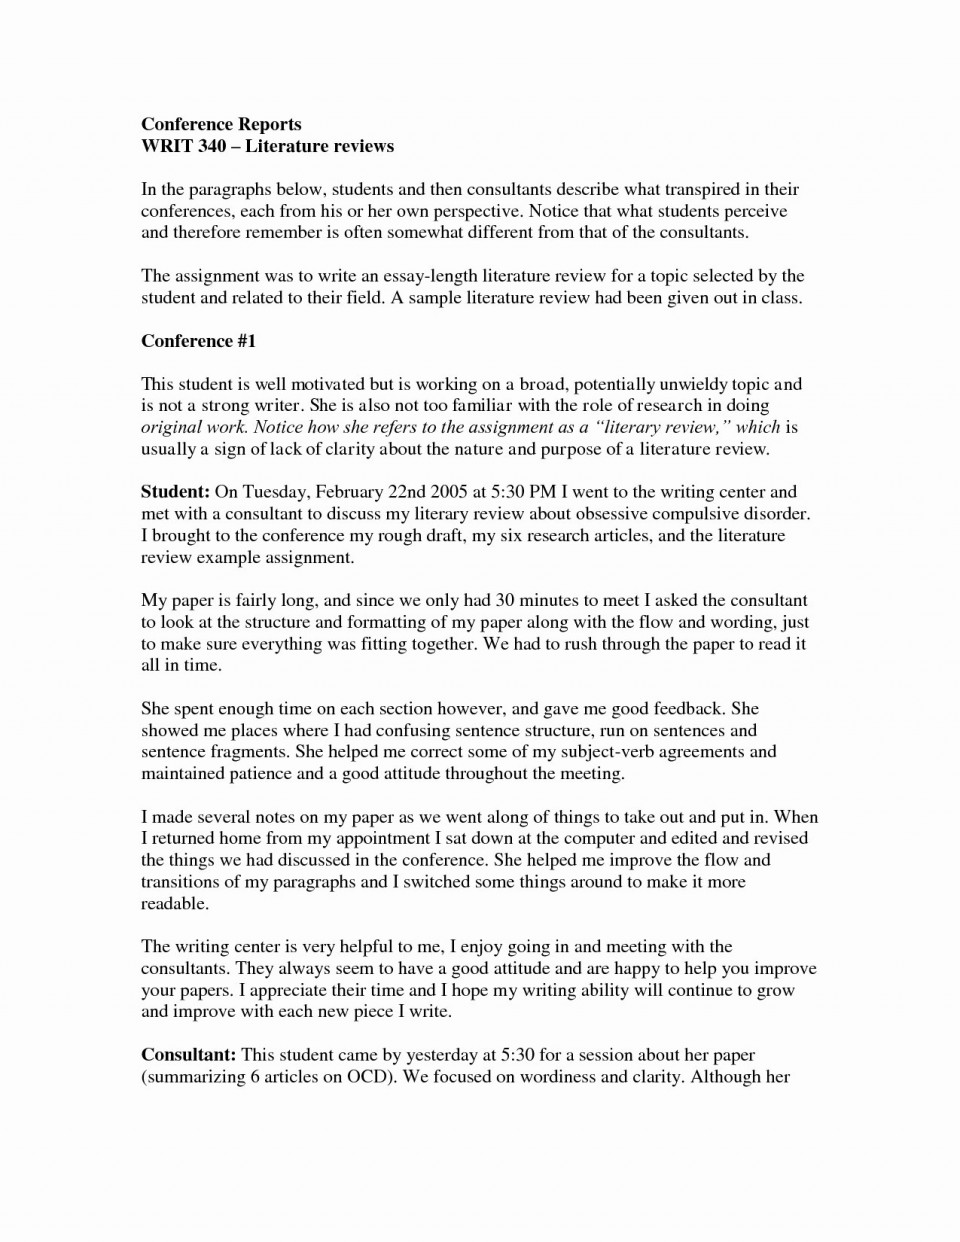 At risk mentality essay